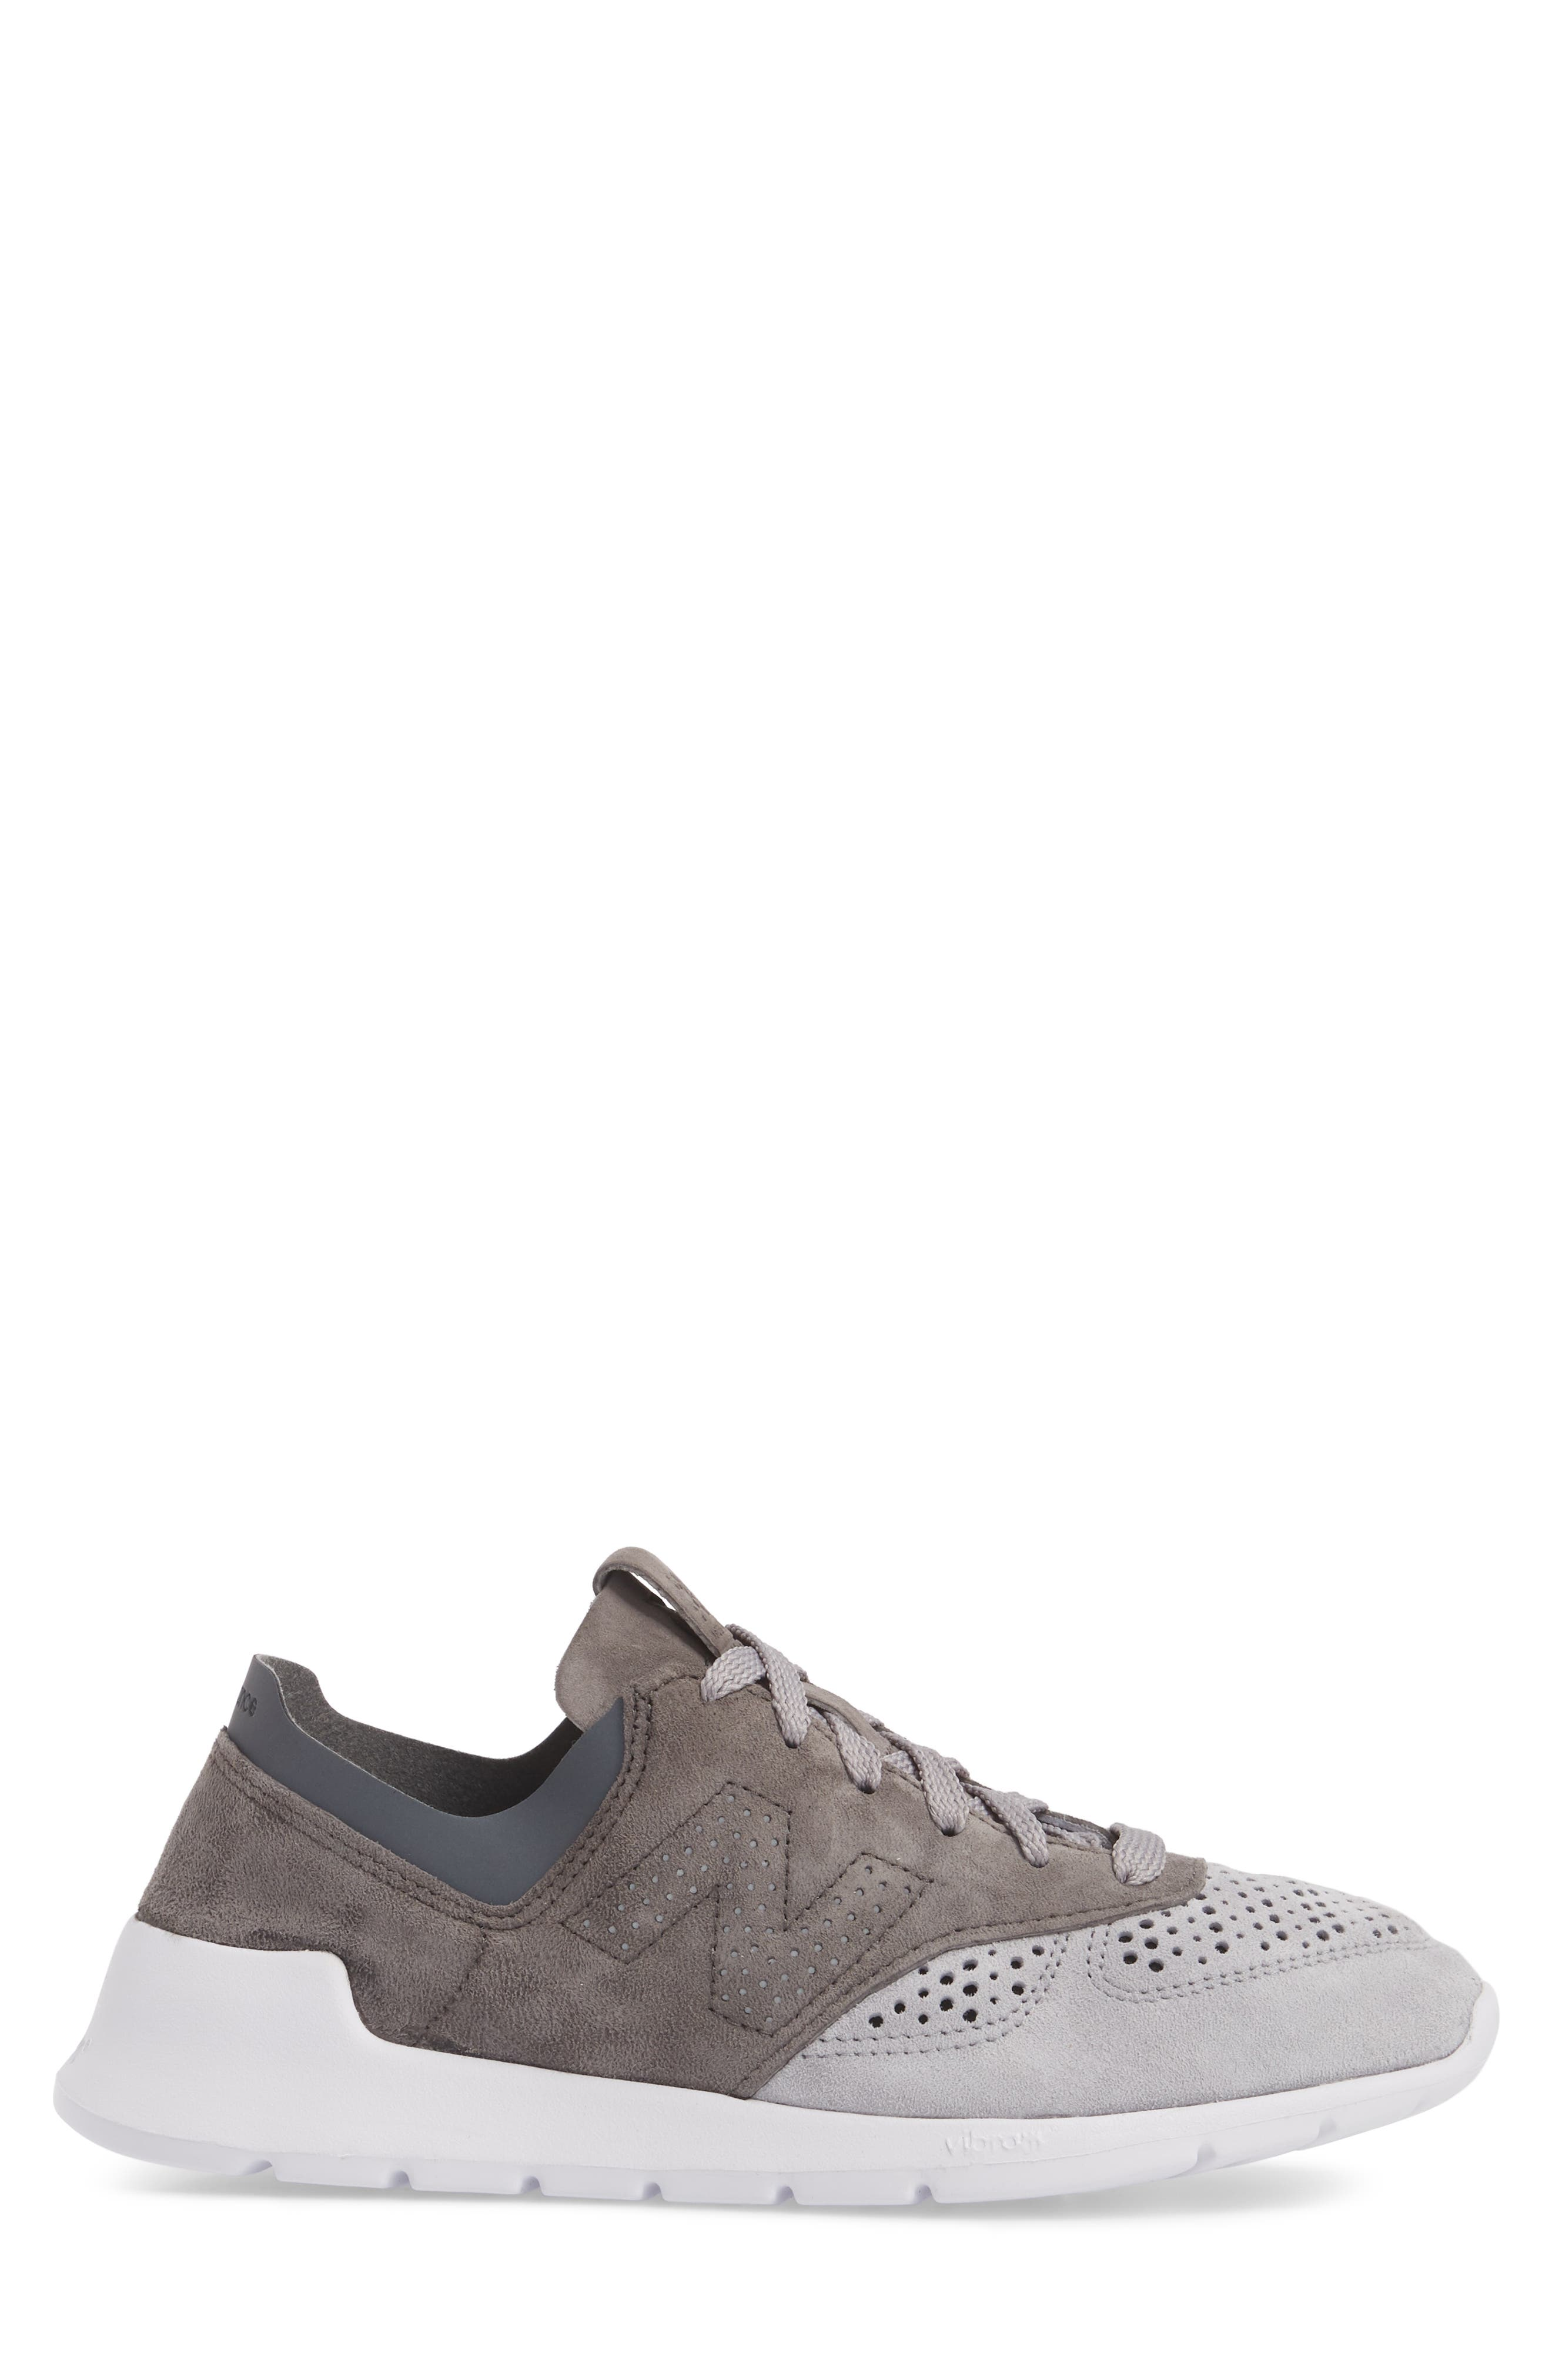 1978 Perforated Sneaker,                             Alternate thumbnail 3, color,                             Grey